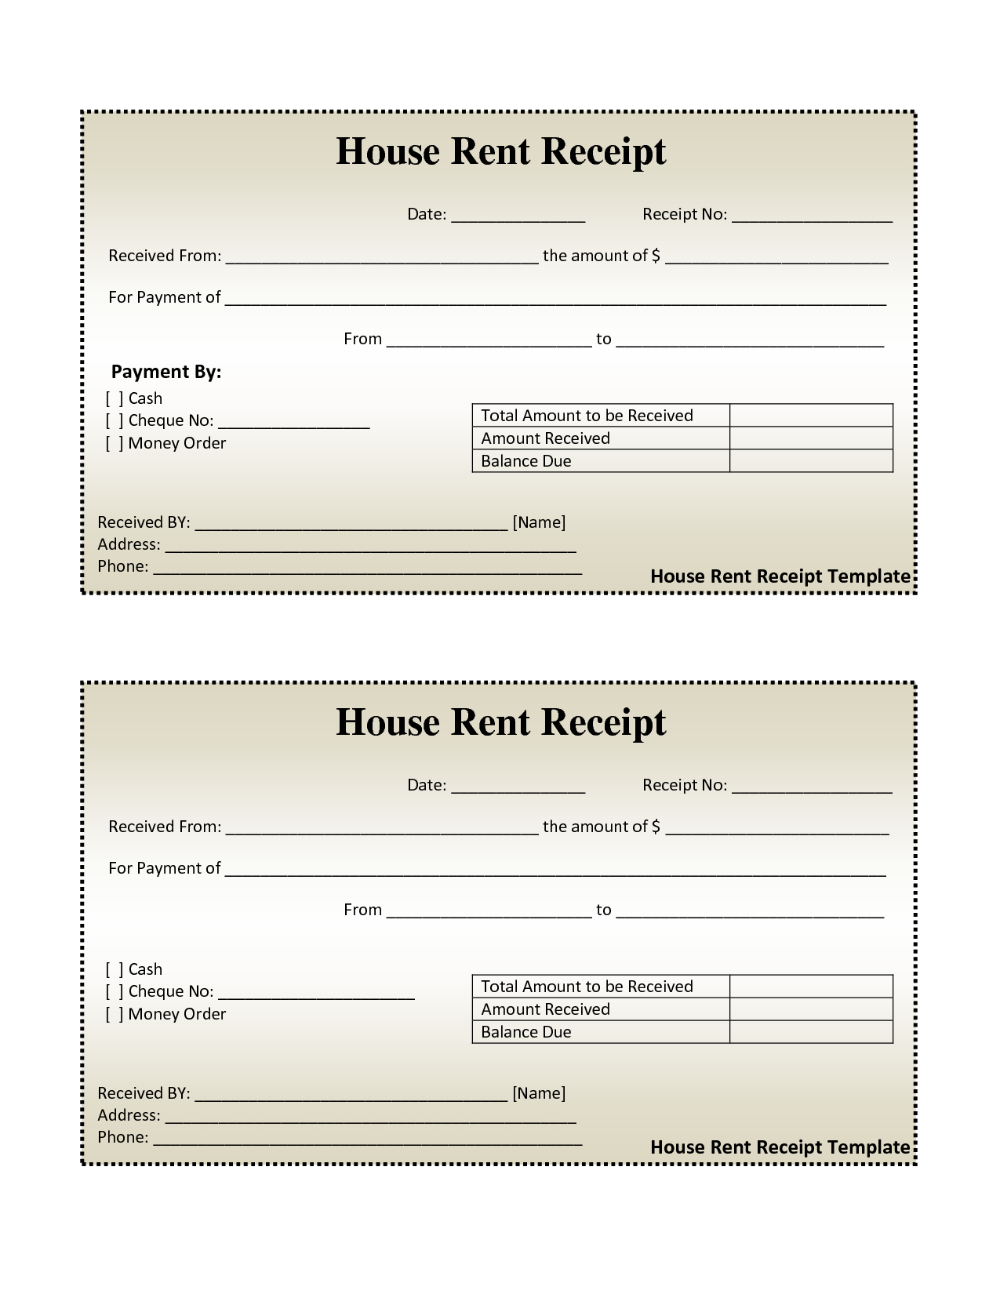 Free House Rental Invoice House Rent Receipt Template Doc In Monthly Rent Invoice Template 10 Professional Receipt Template Invoice Template Ticket Template